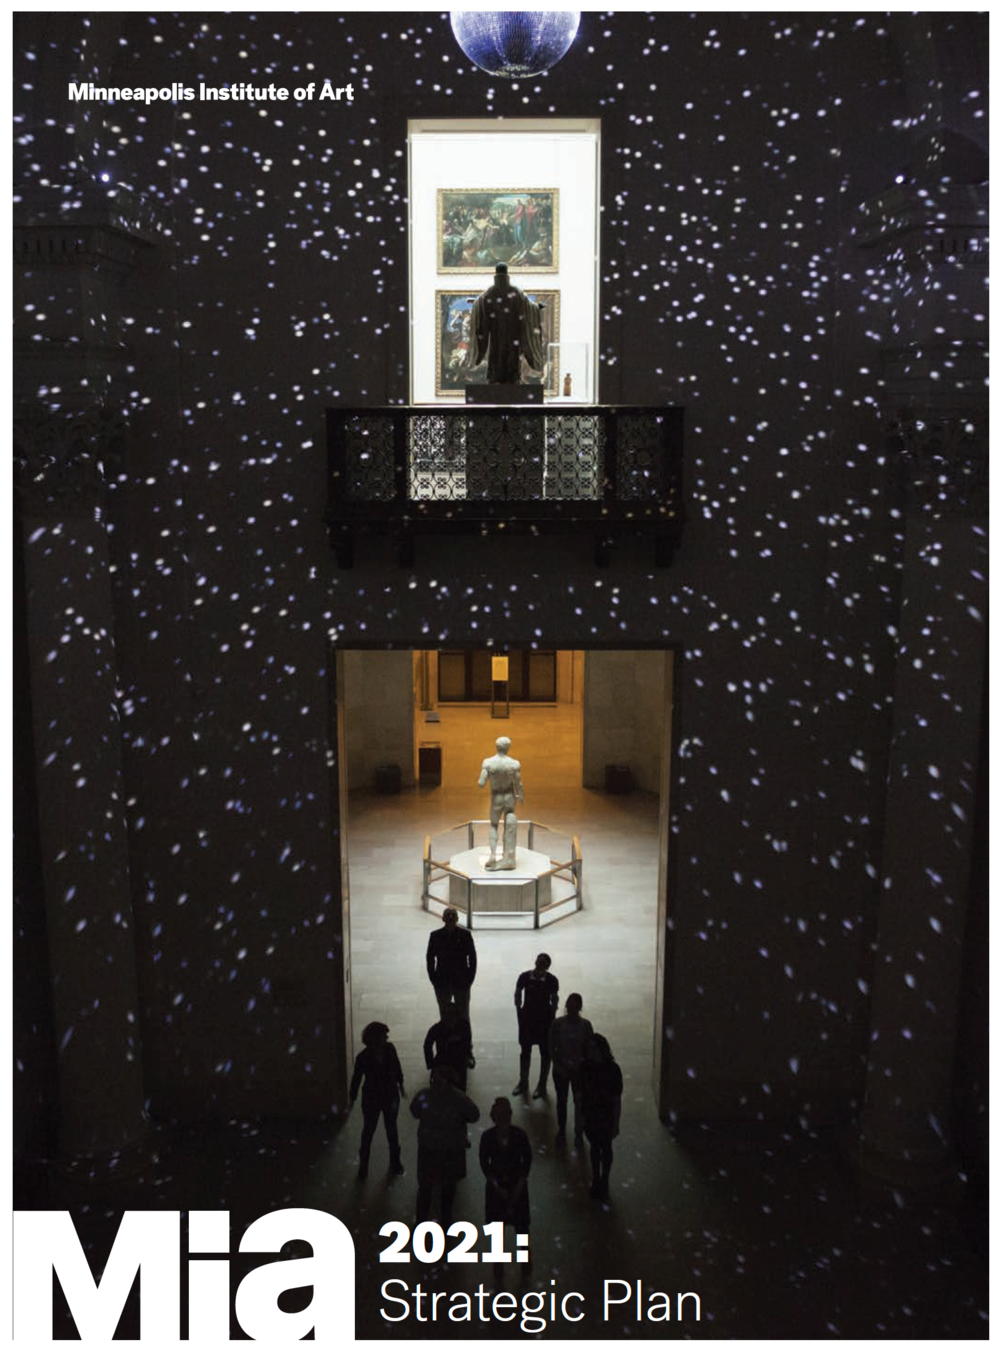 Above: The cover of the Minneapolis Museum of Art's (mia) 2021 Strategic Plan, developed through a Strategic Planning Process facilitated by Vogl Consulting for the encyclopedic art-museum visited by over 750,000 people each year.